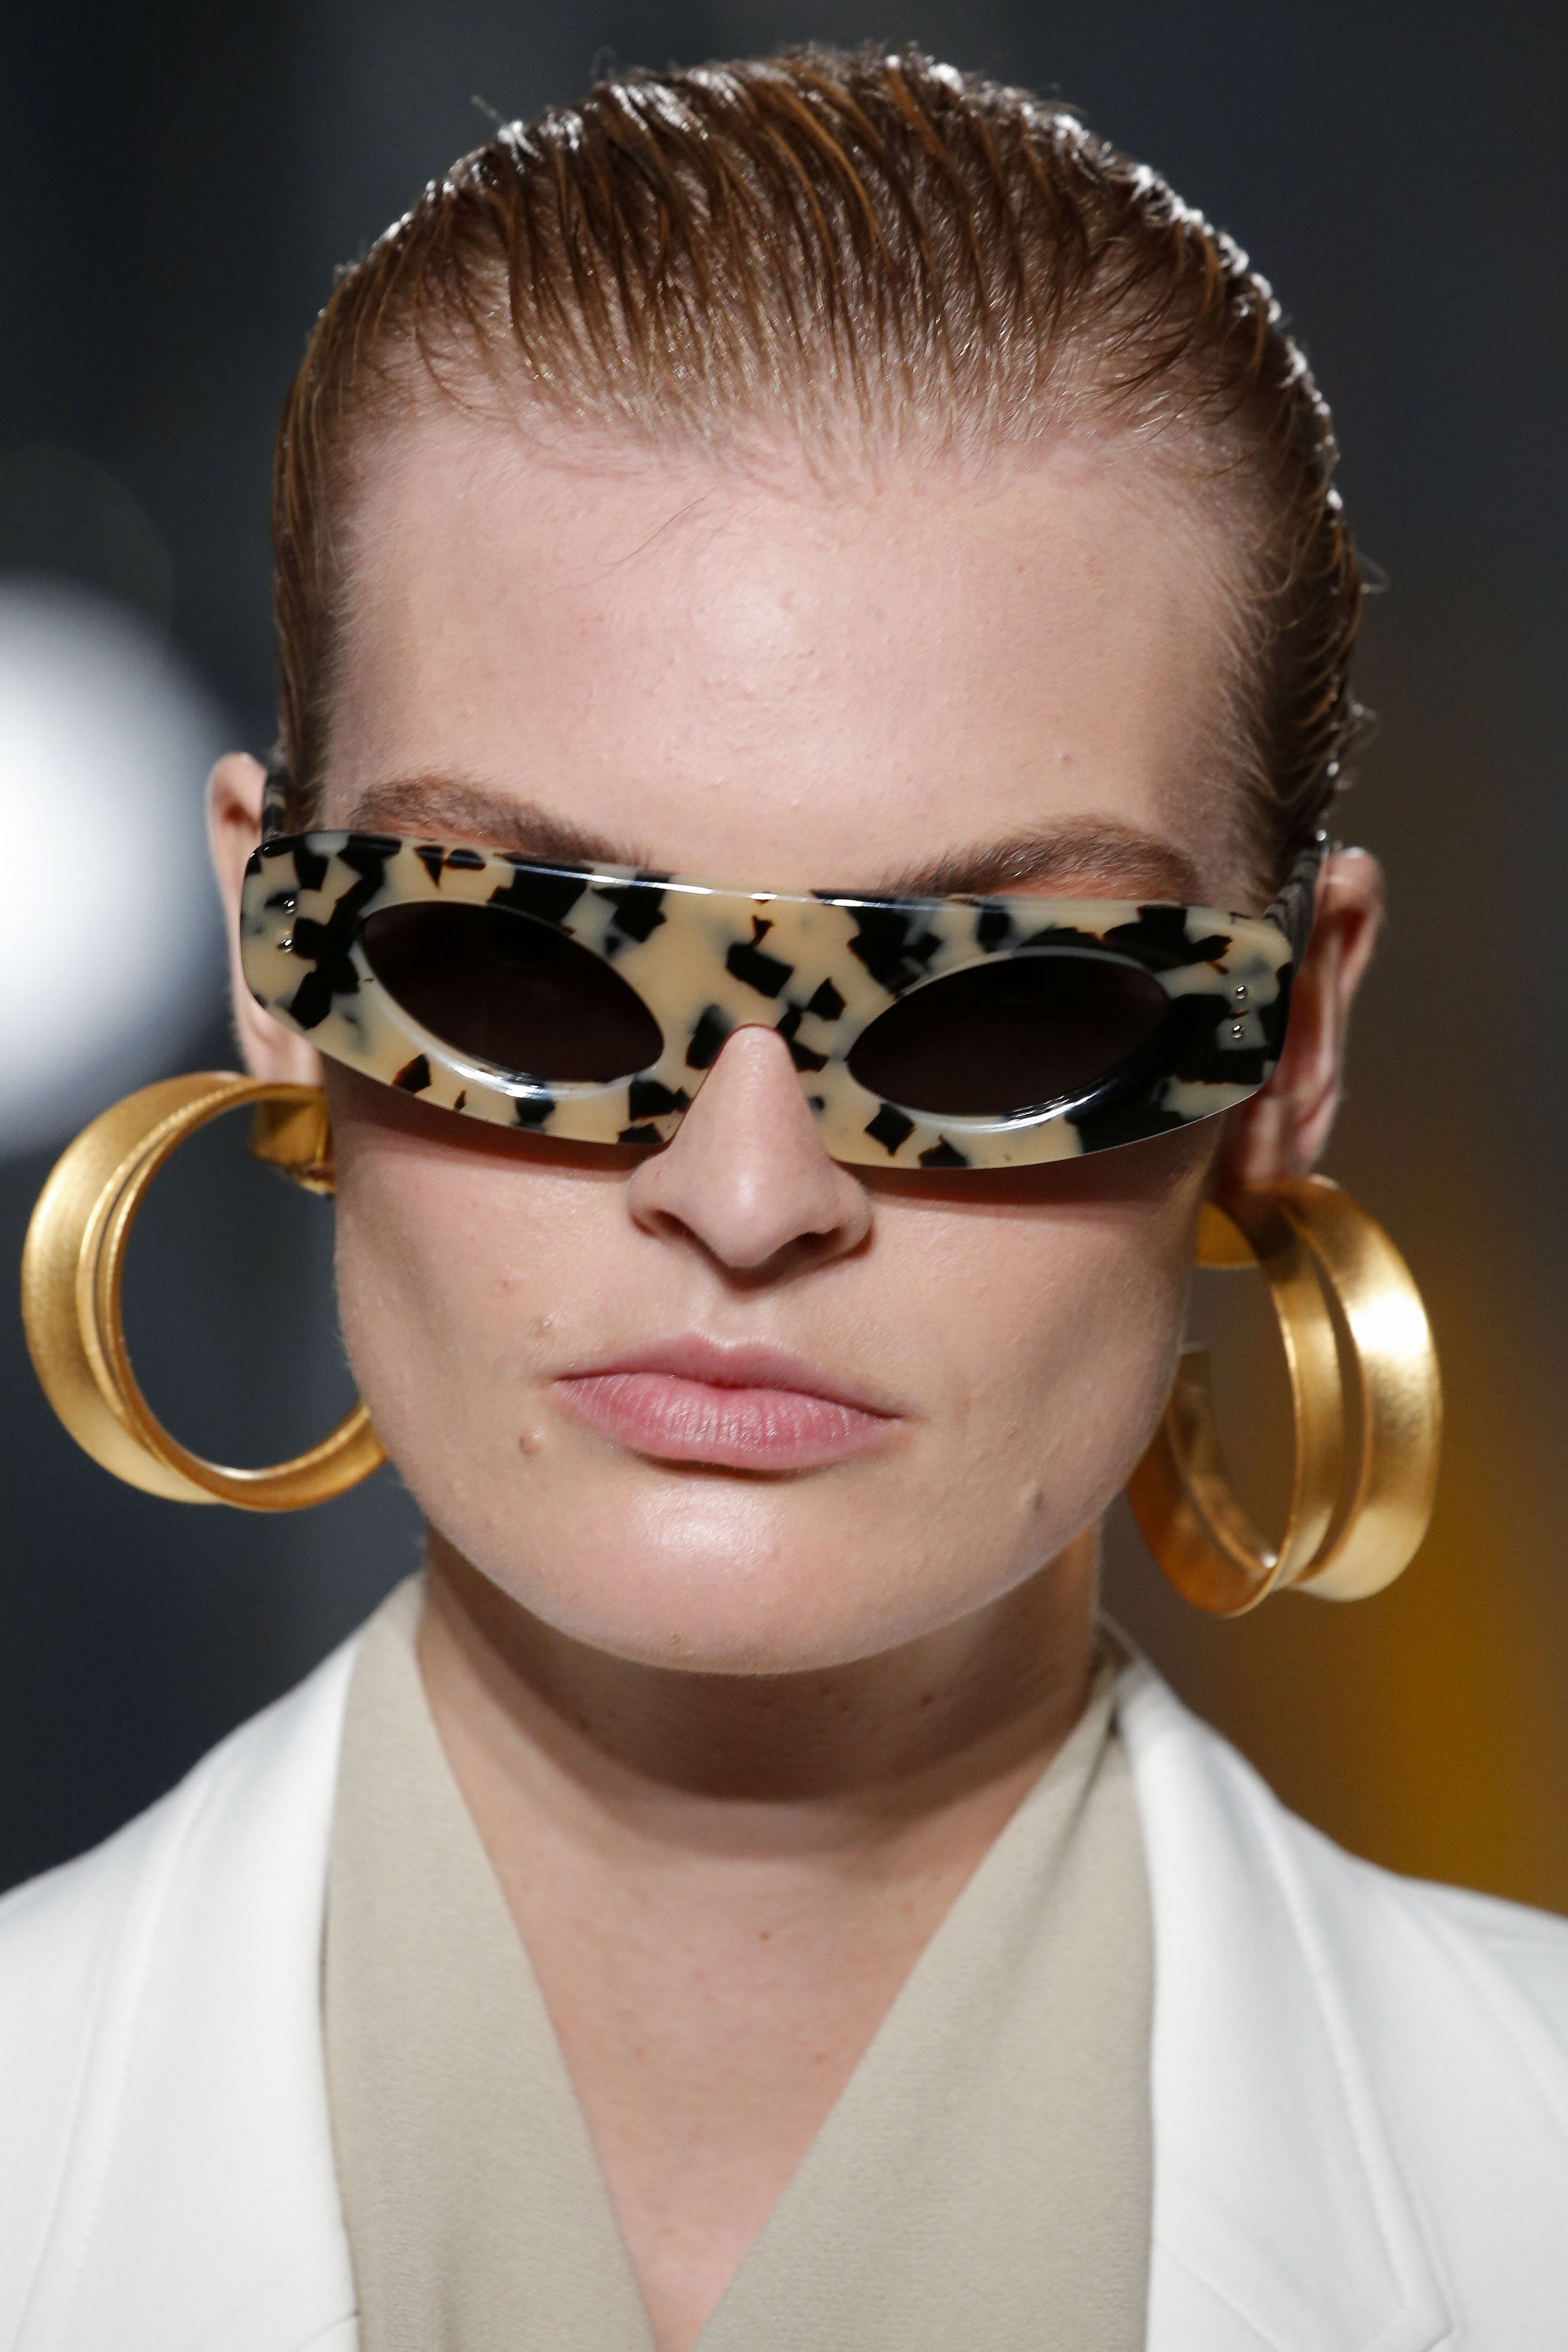 Sunglass Trends 2020.All The Hottest Sunglasses Jewelry And Accessories Trends